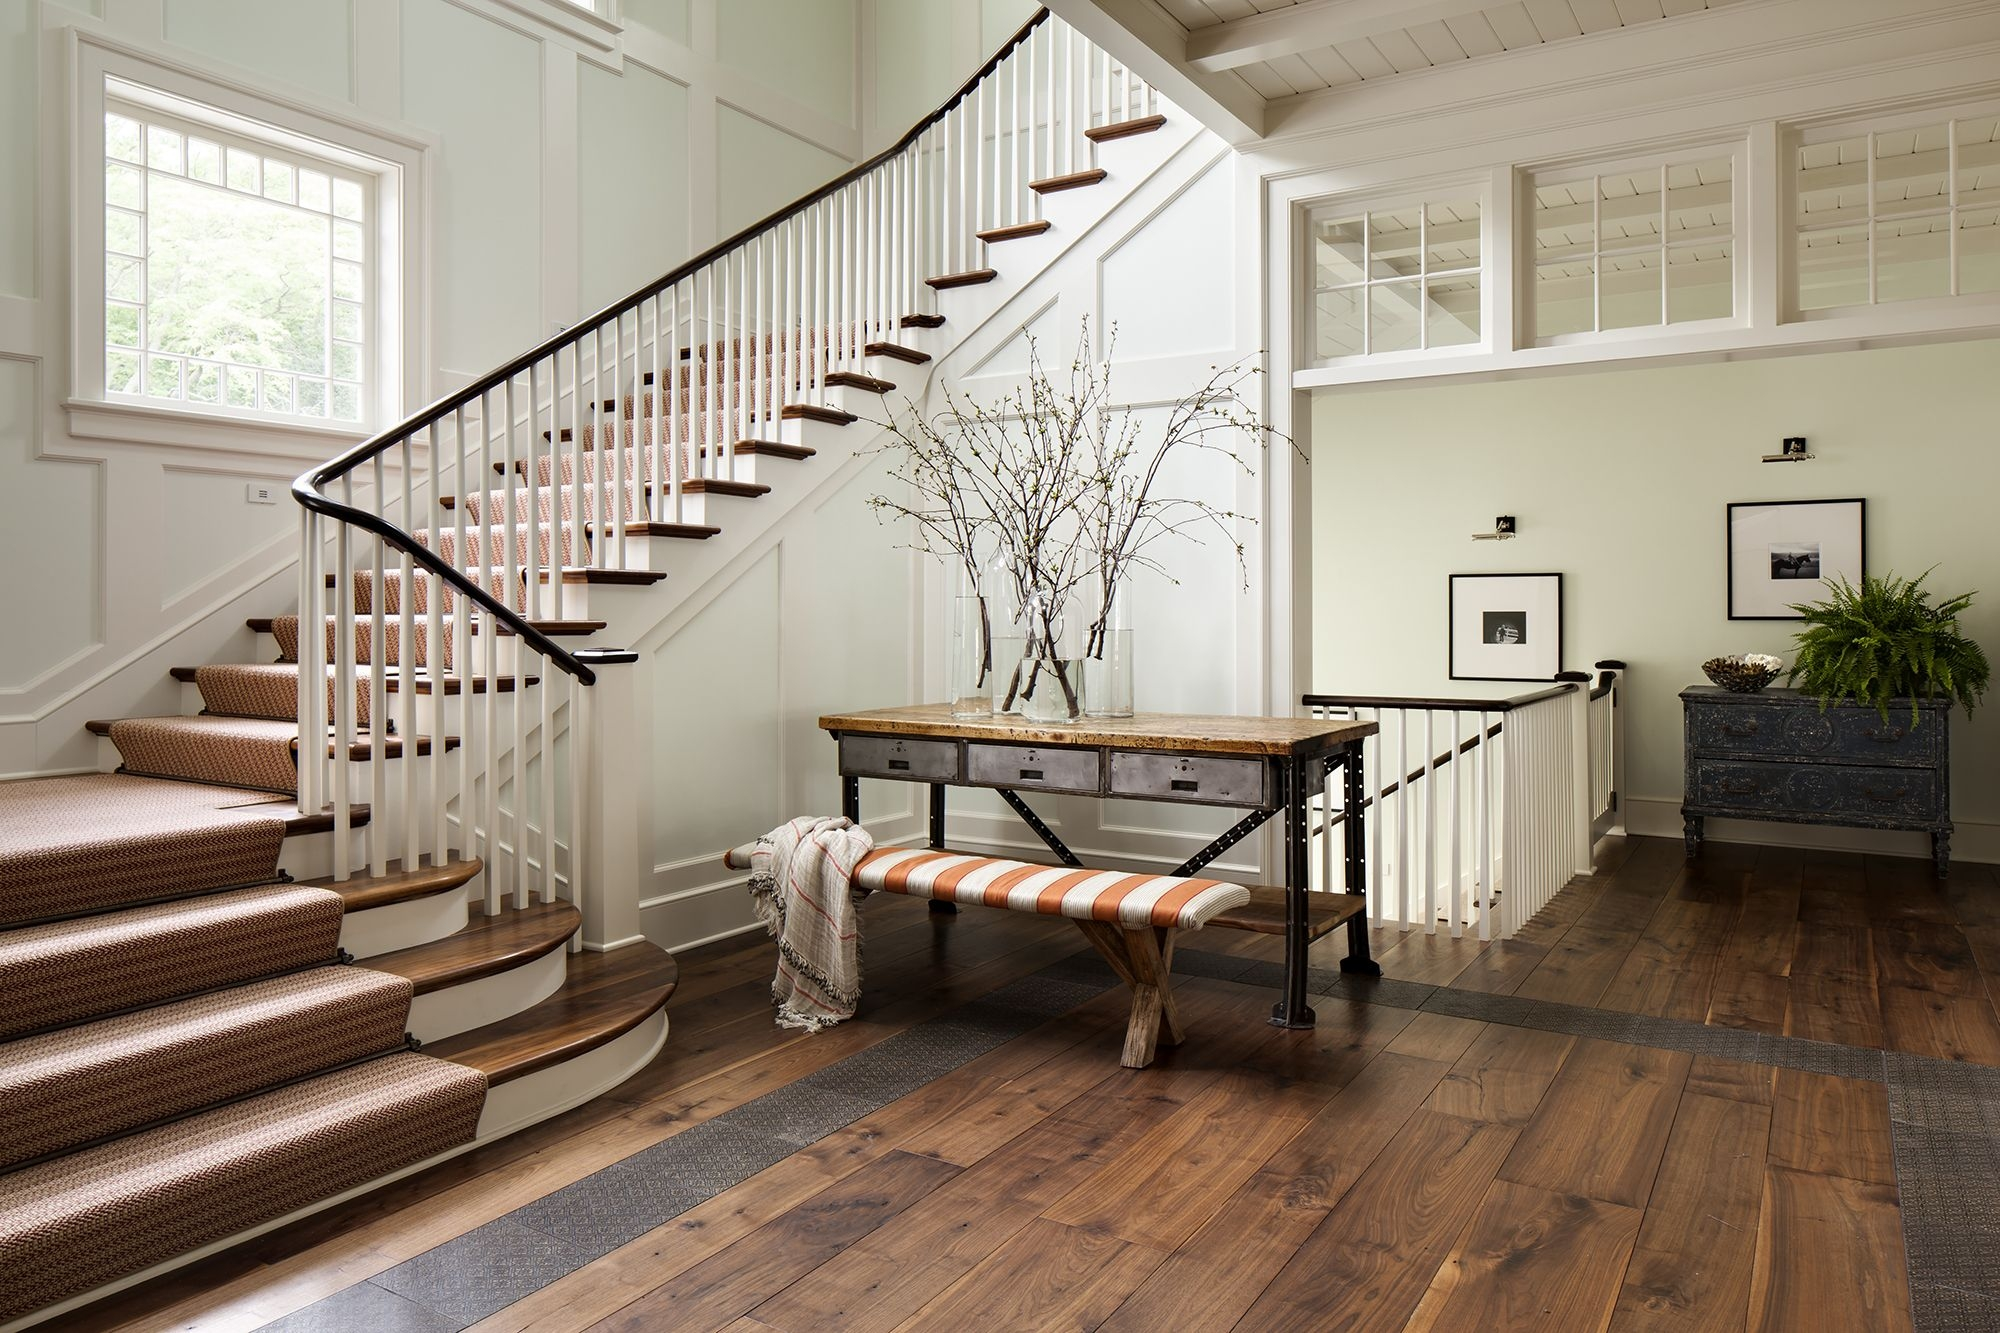 27 Stylish Staircase Decorating Ideas How To Decorate Stairways   Interior Design Of Living Room With Stairs   Stairway   Wall   Low Budget   Low Cost   Mansion